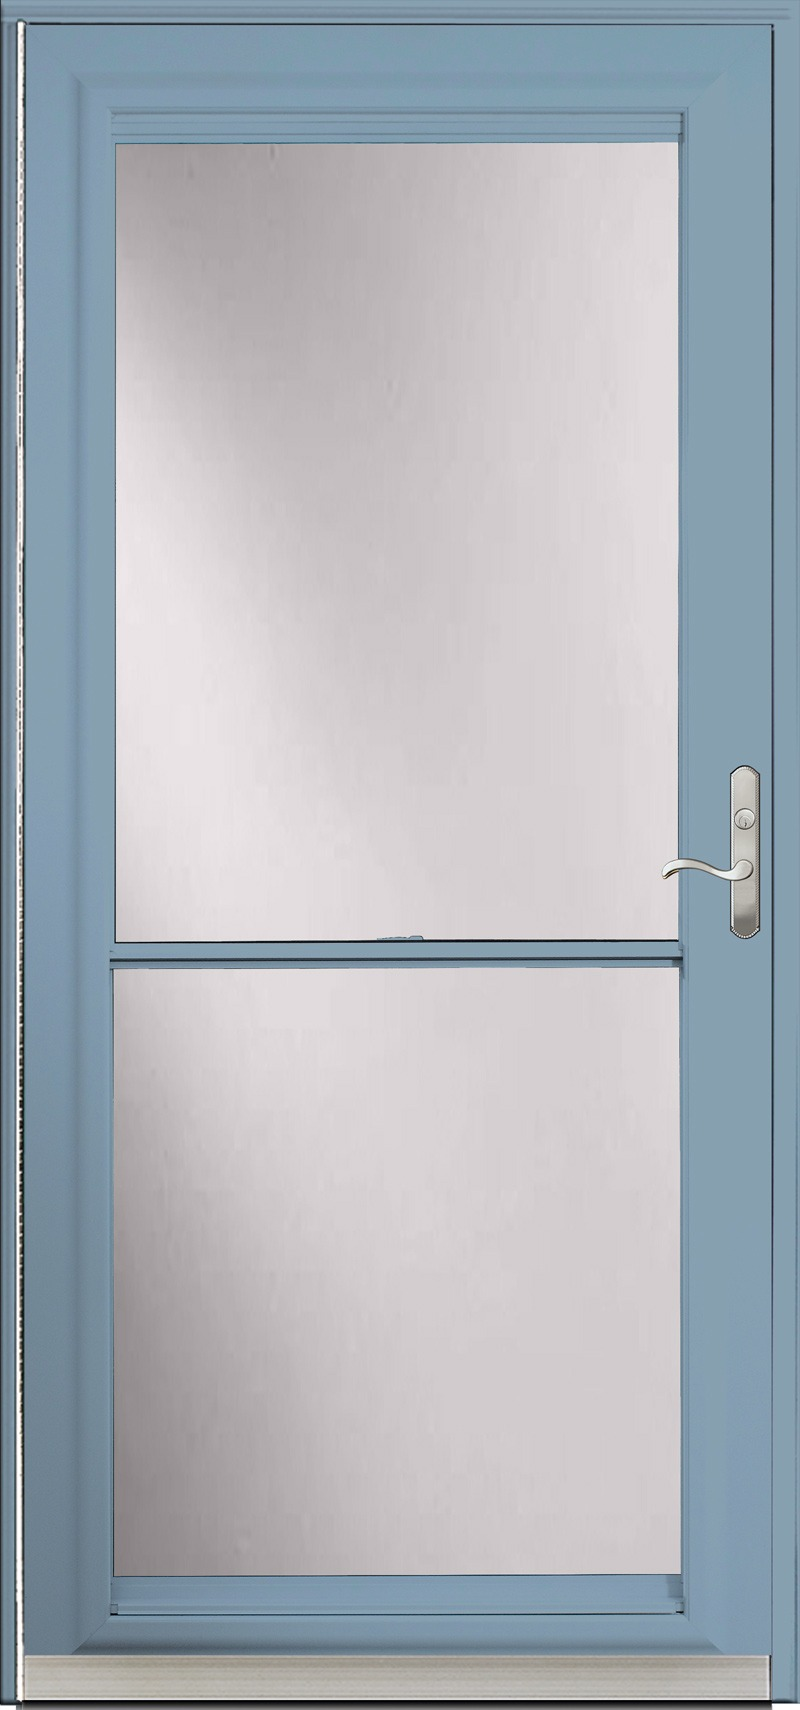 A door with a blue frame and glass